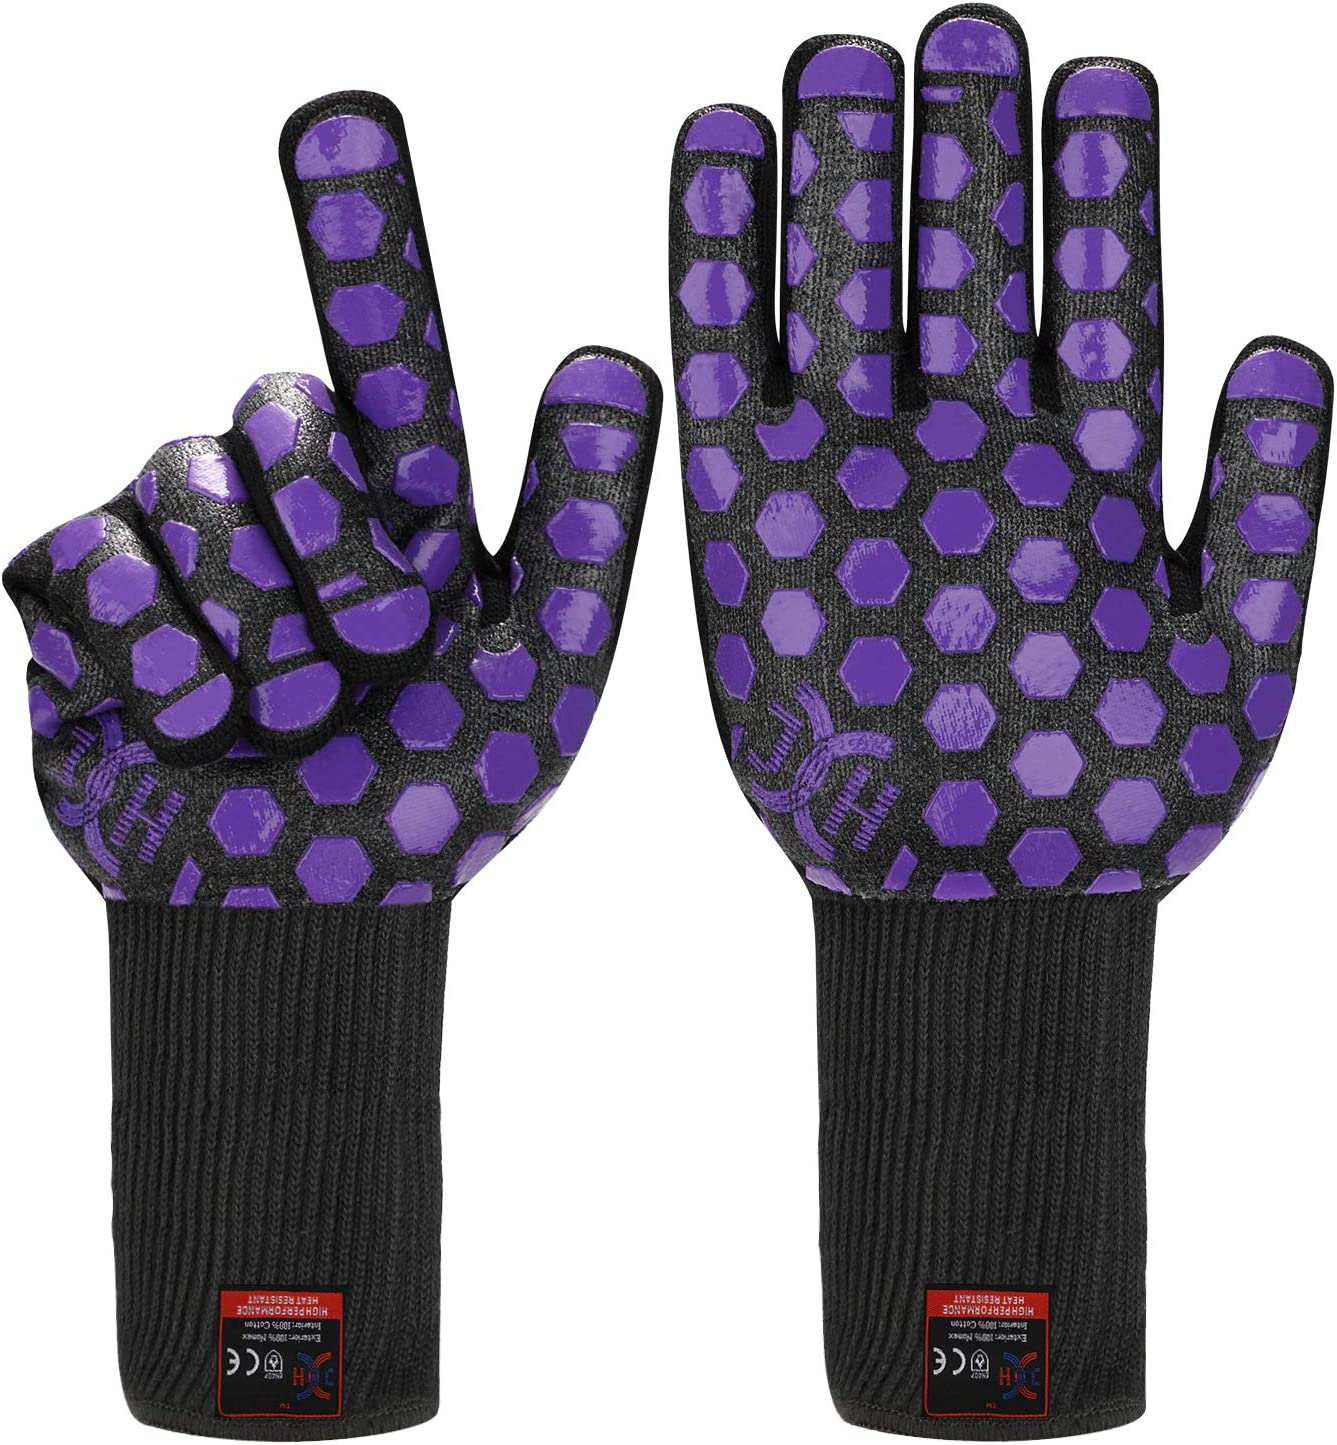 JH Heat Resistant Oven Glove:EN407 Certified 932 °F, 2 Layers Silicone Coating, Black Shell with Purple Coating, BBQ & Oven Mitts For Cooking, Kitchen, Fireplace, Grilling, 1 Pair, Extended Long Cuff